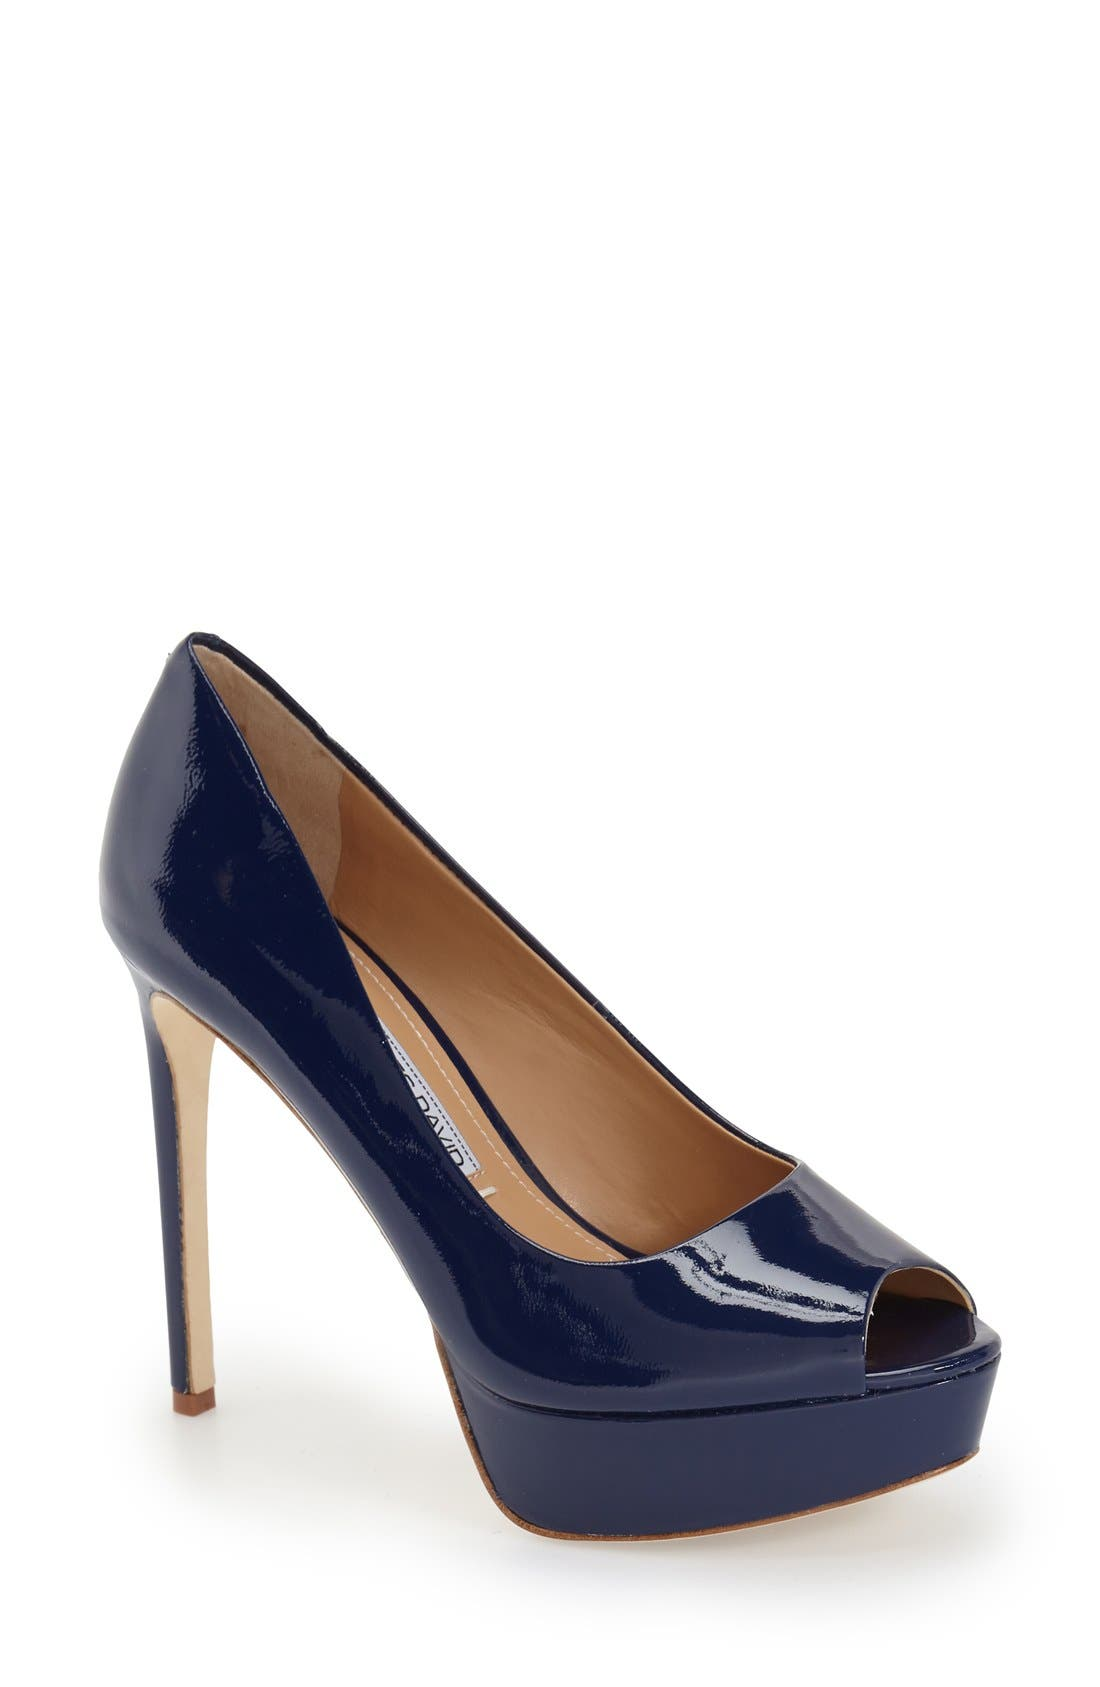 Main Image - Charles David 'Nivia' Platform Pump (Women)